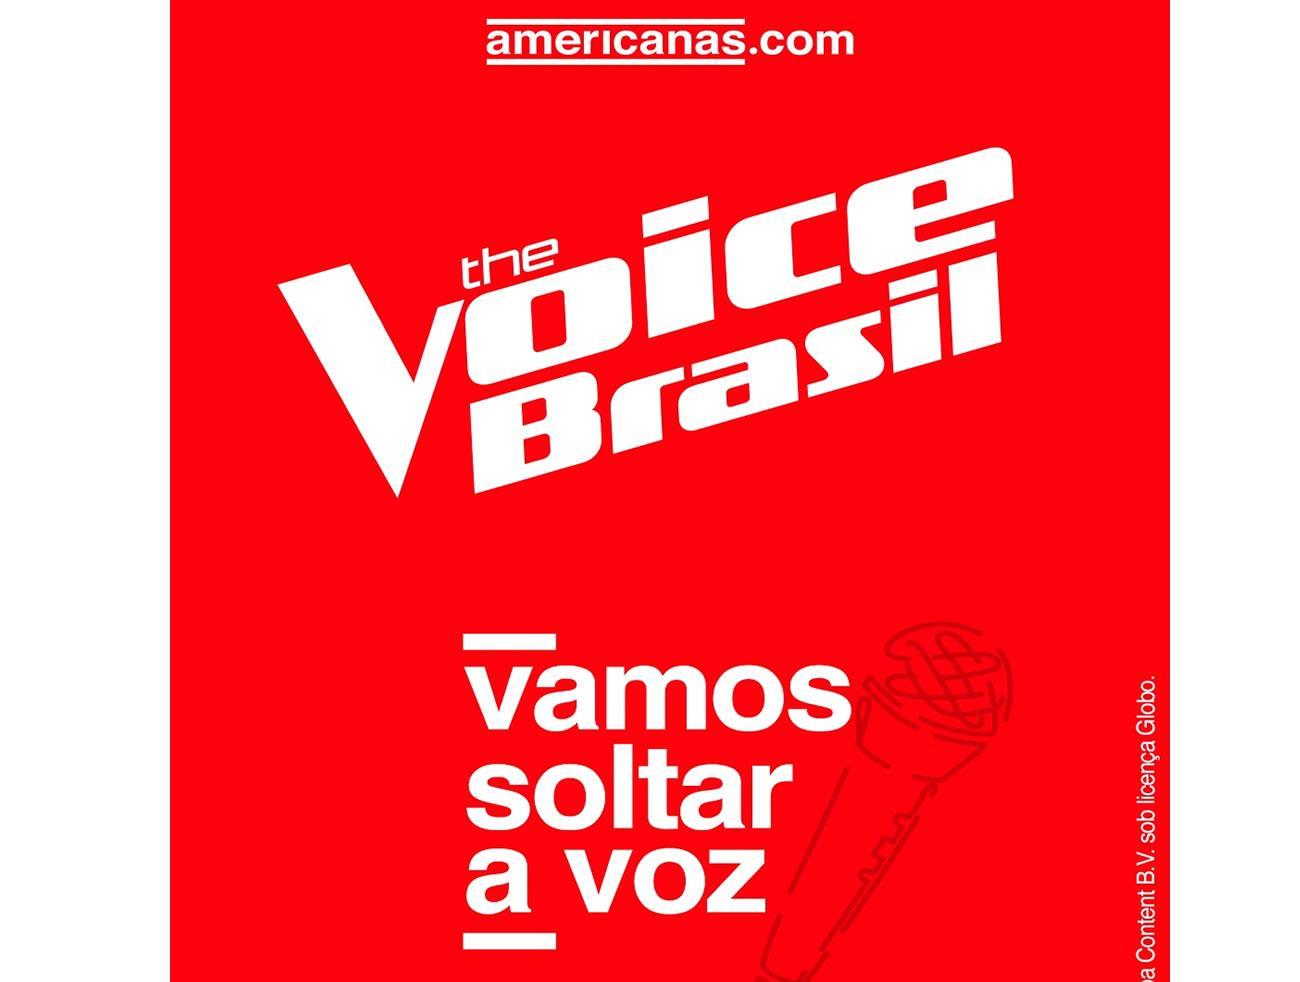 Americanas.com presenteia finalistas do The Voice Brasil